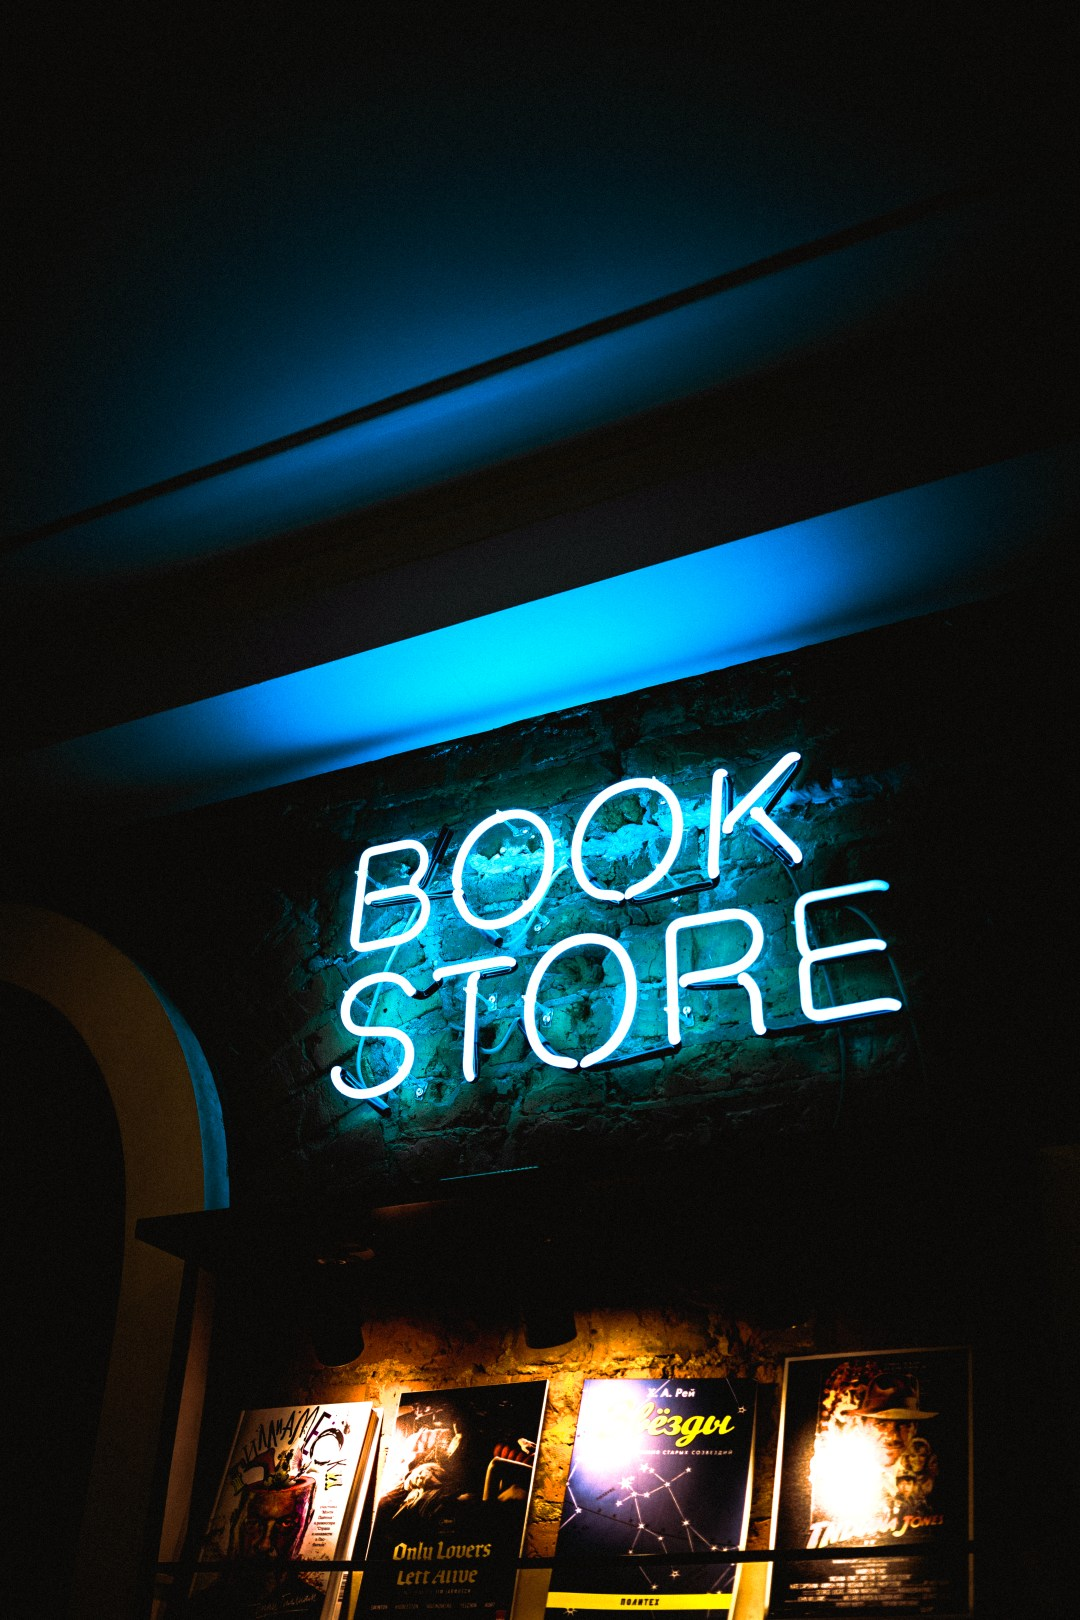 Book store books store and sign HD photo by Serge